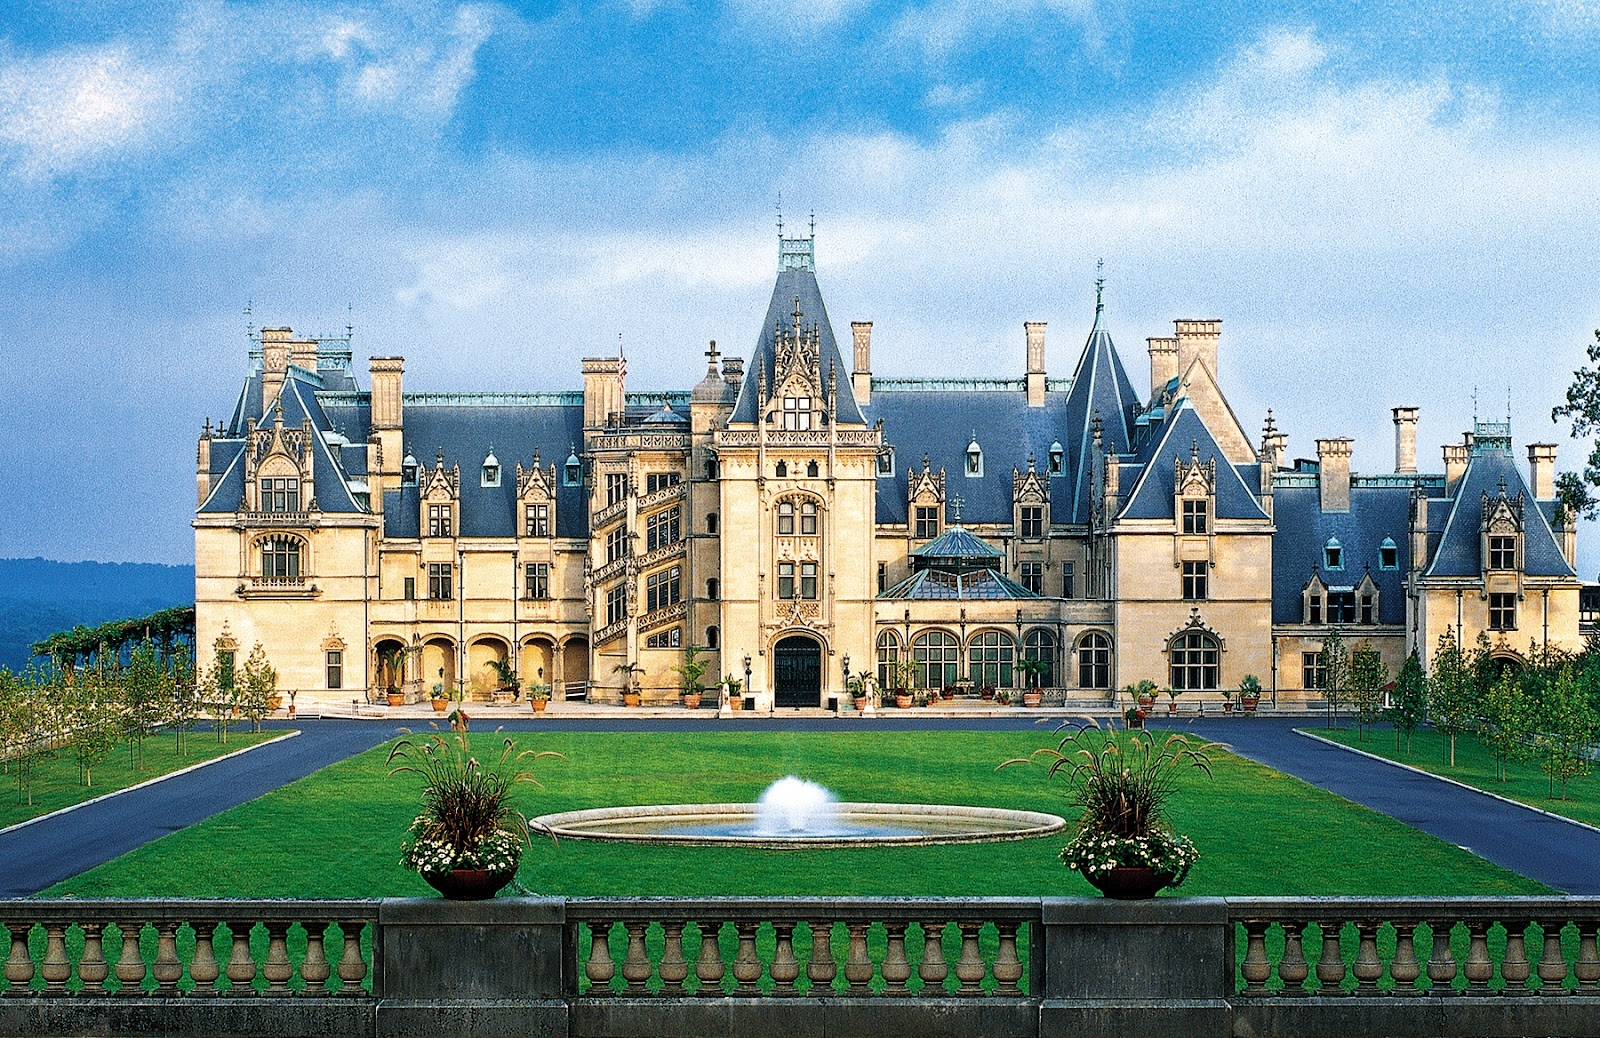 Biltmore House - Welcome to America's Largest Home®Delight in our spectacular Chihuly at Biltmore exhibition, outdoor concerts, wine tastings at America's most visited winery, and the opportunity to explore our 8,000-acre backyard via kayak, Segway, horseback, bike, Land Rover, and more.